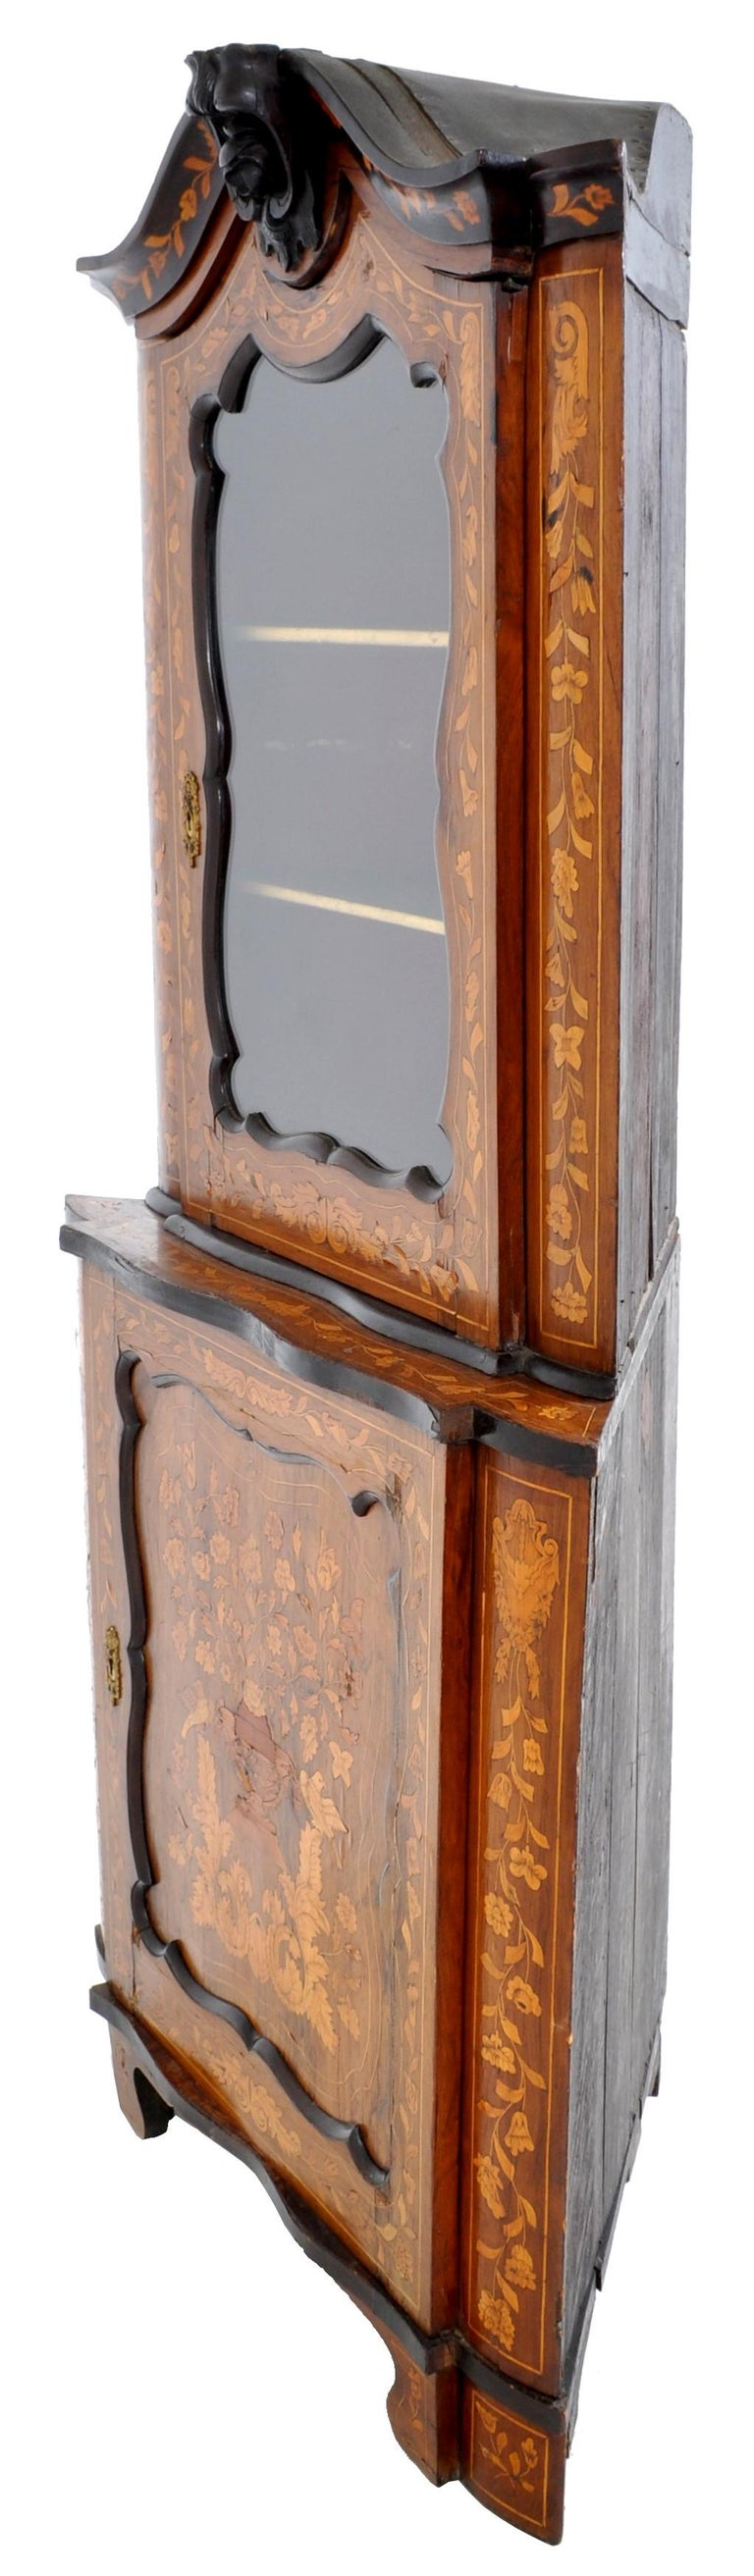 Antique Inlaid Marquetry Dutch Two-Piece Corner Cabinet, circa 1830 For Sale 7